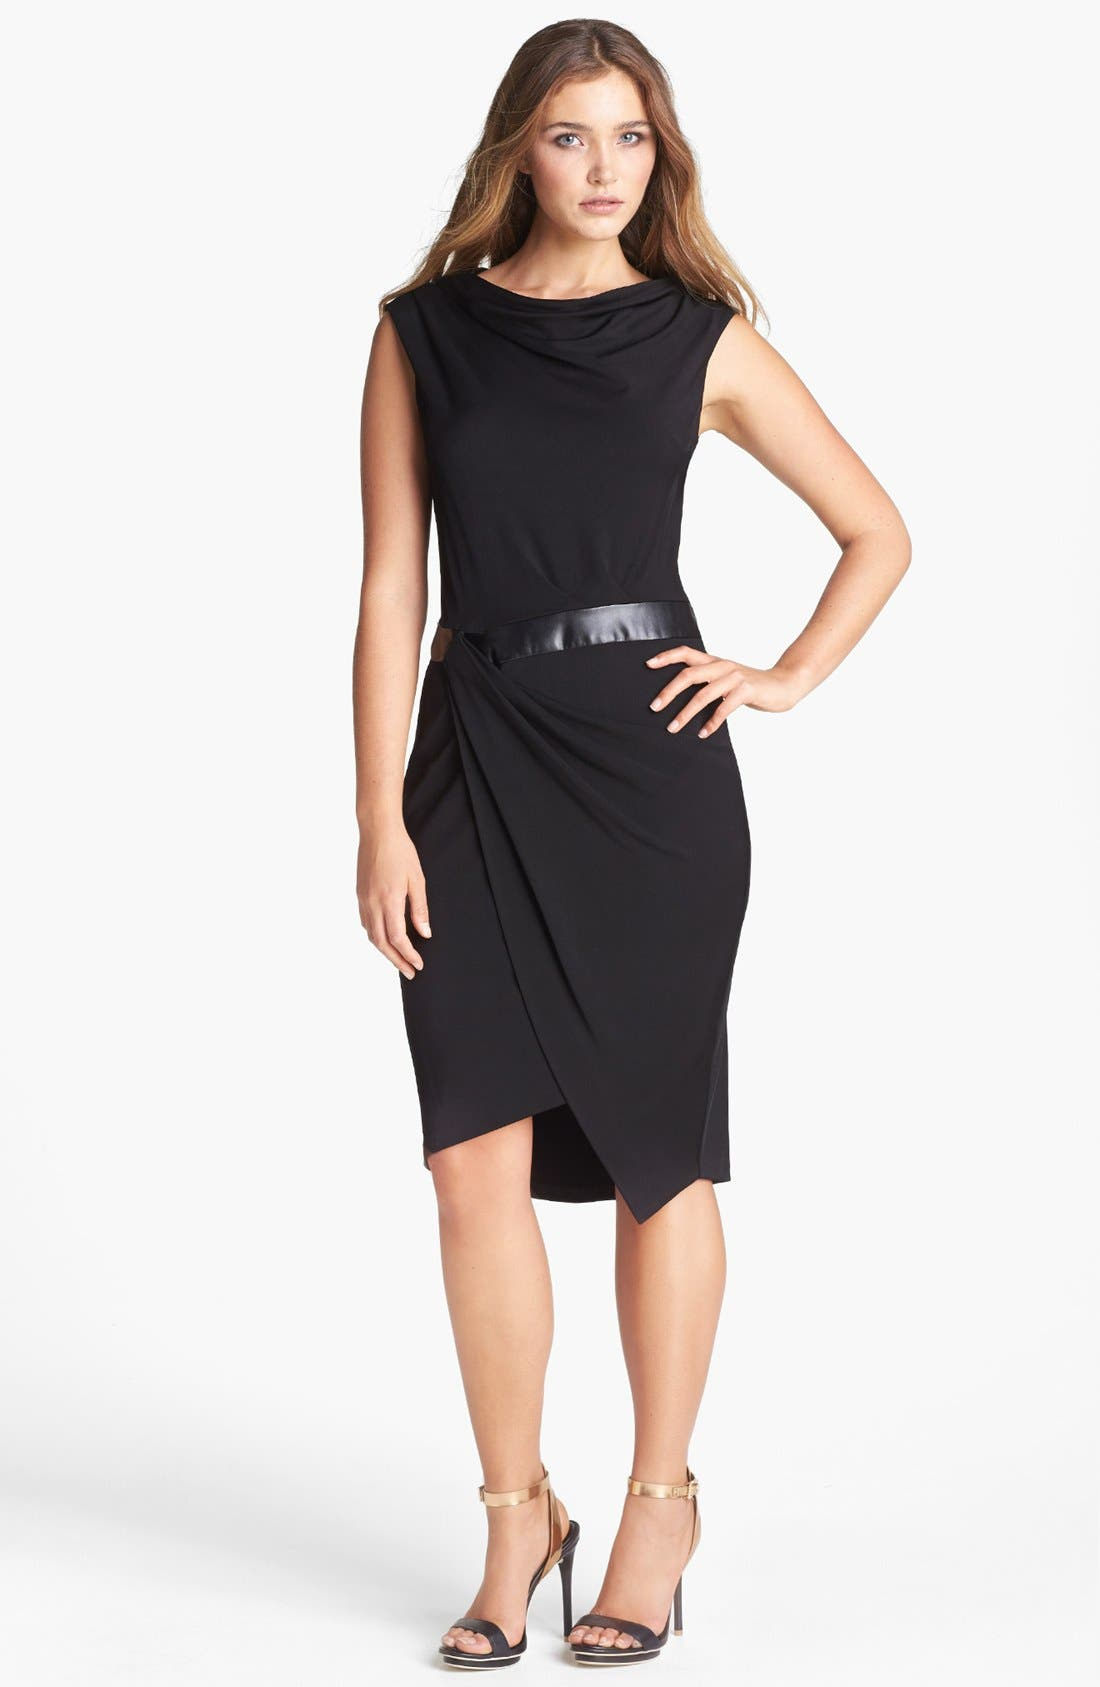 Alternate Image 1 Selected - Vera Wang Faux Leather Inset Drape Jersey Dress